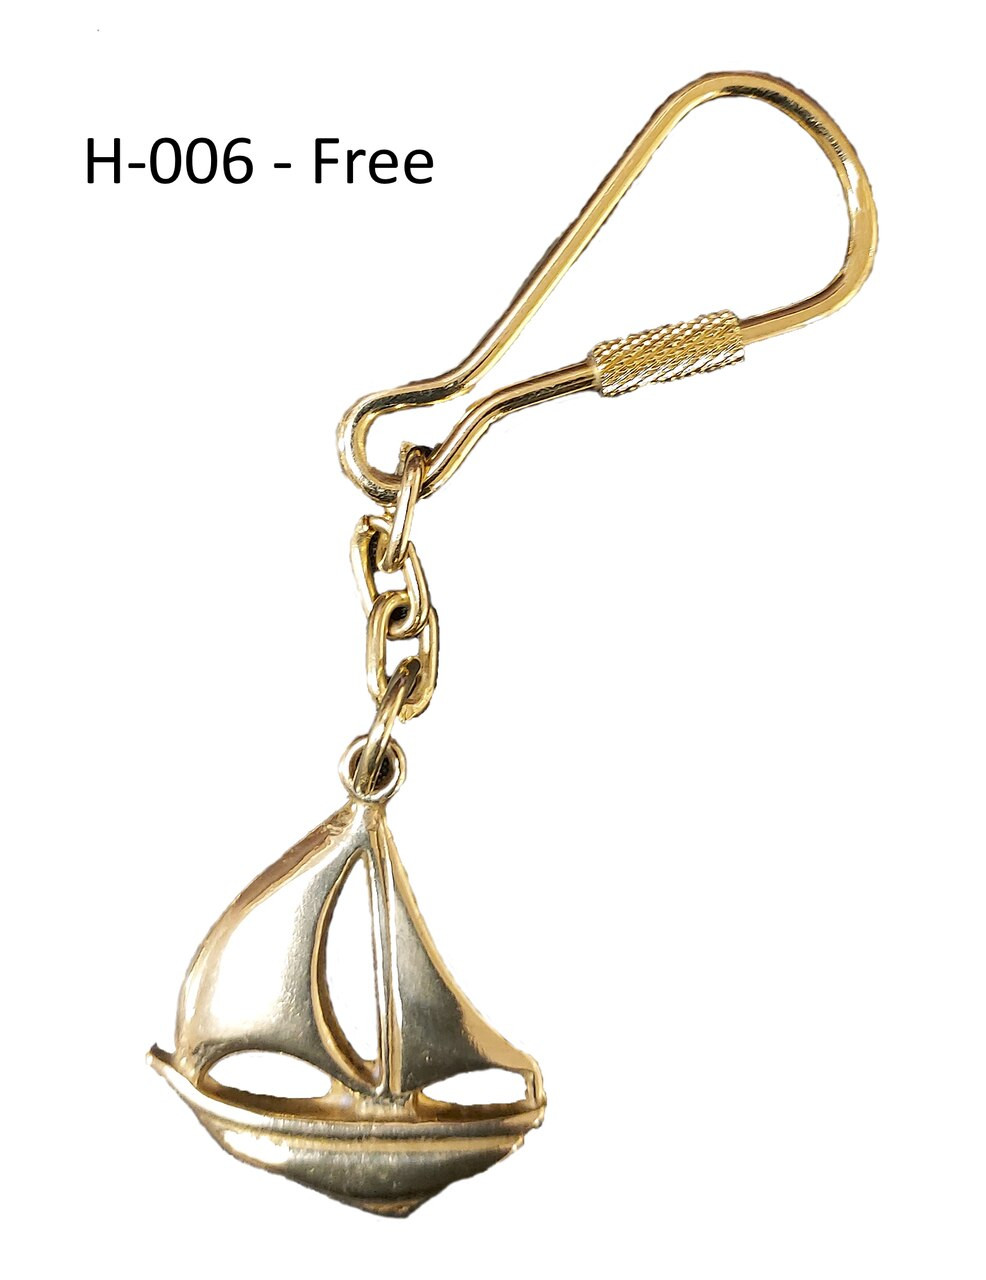 H-006 - Brass Ship Key Chain - Free with Purchase of Any Product from our FREE GIFT WITH PURCHASE Promotional Category